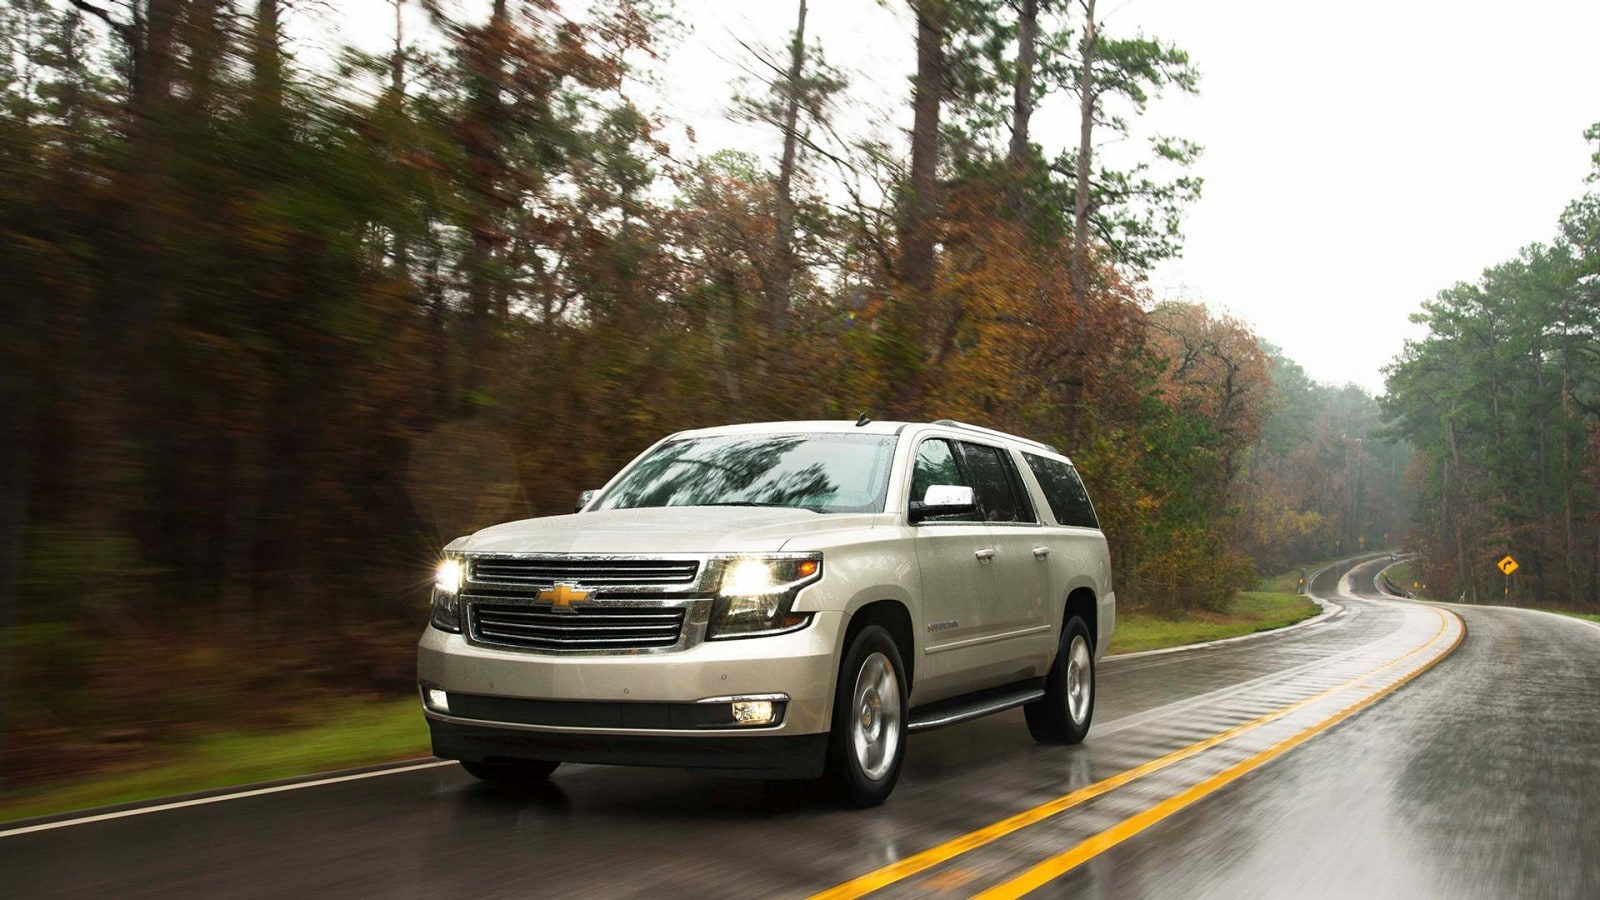 2016 Chevy Suburban for sale in Cincinnati